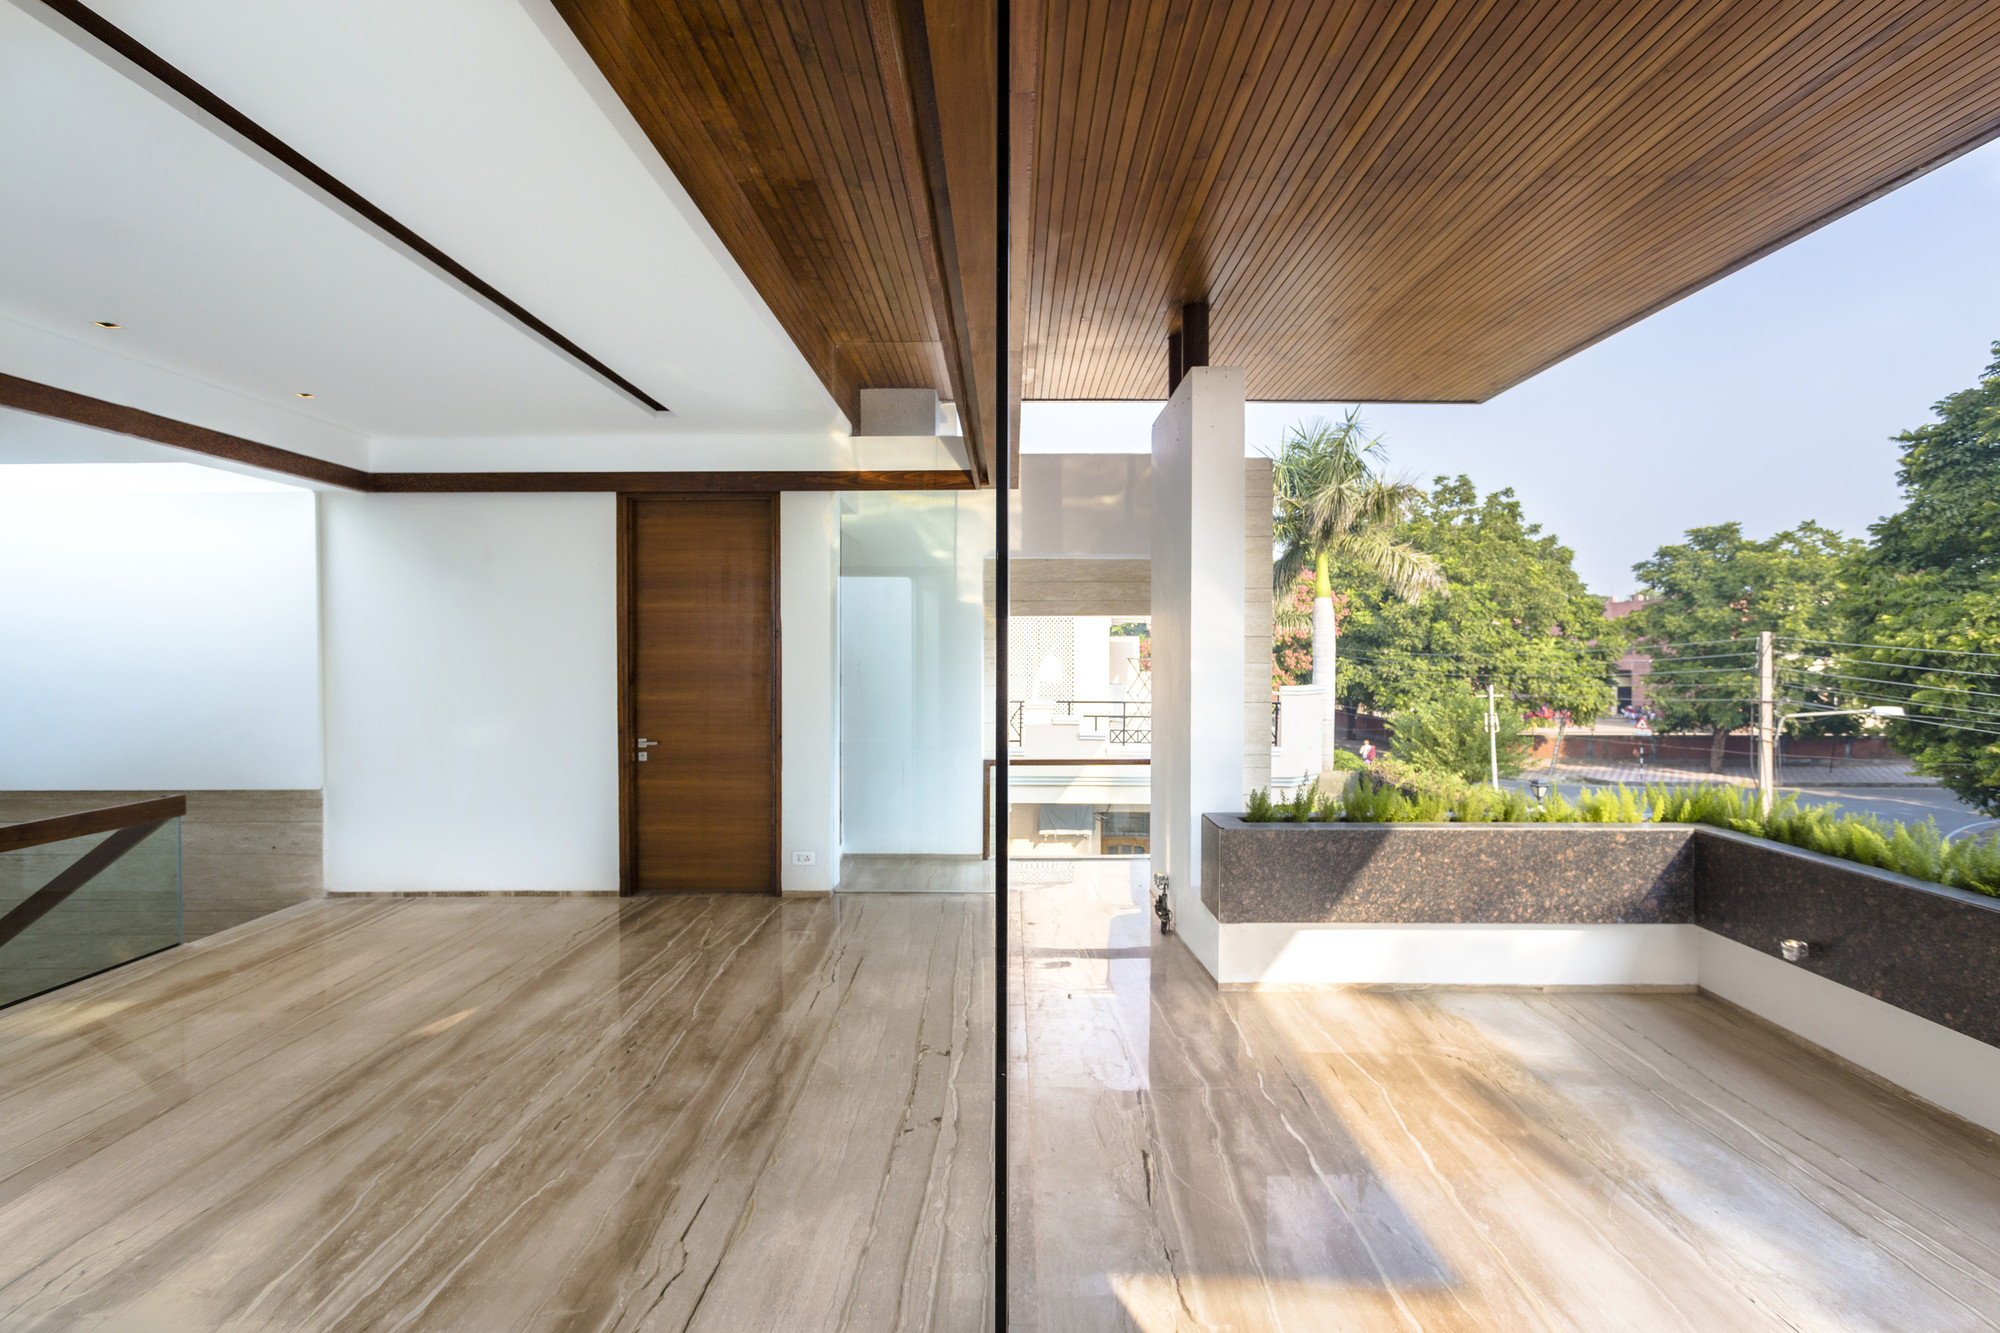 Gallery Of House In Mohali Charged Voids 5 Interiors Inside Ideas Interiors design about Everything [magnanprojects.com]